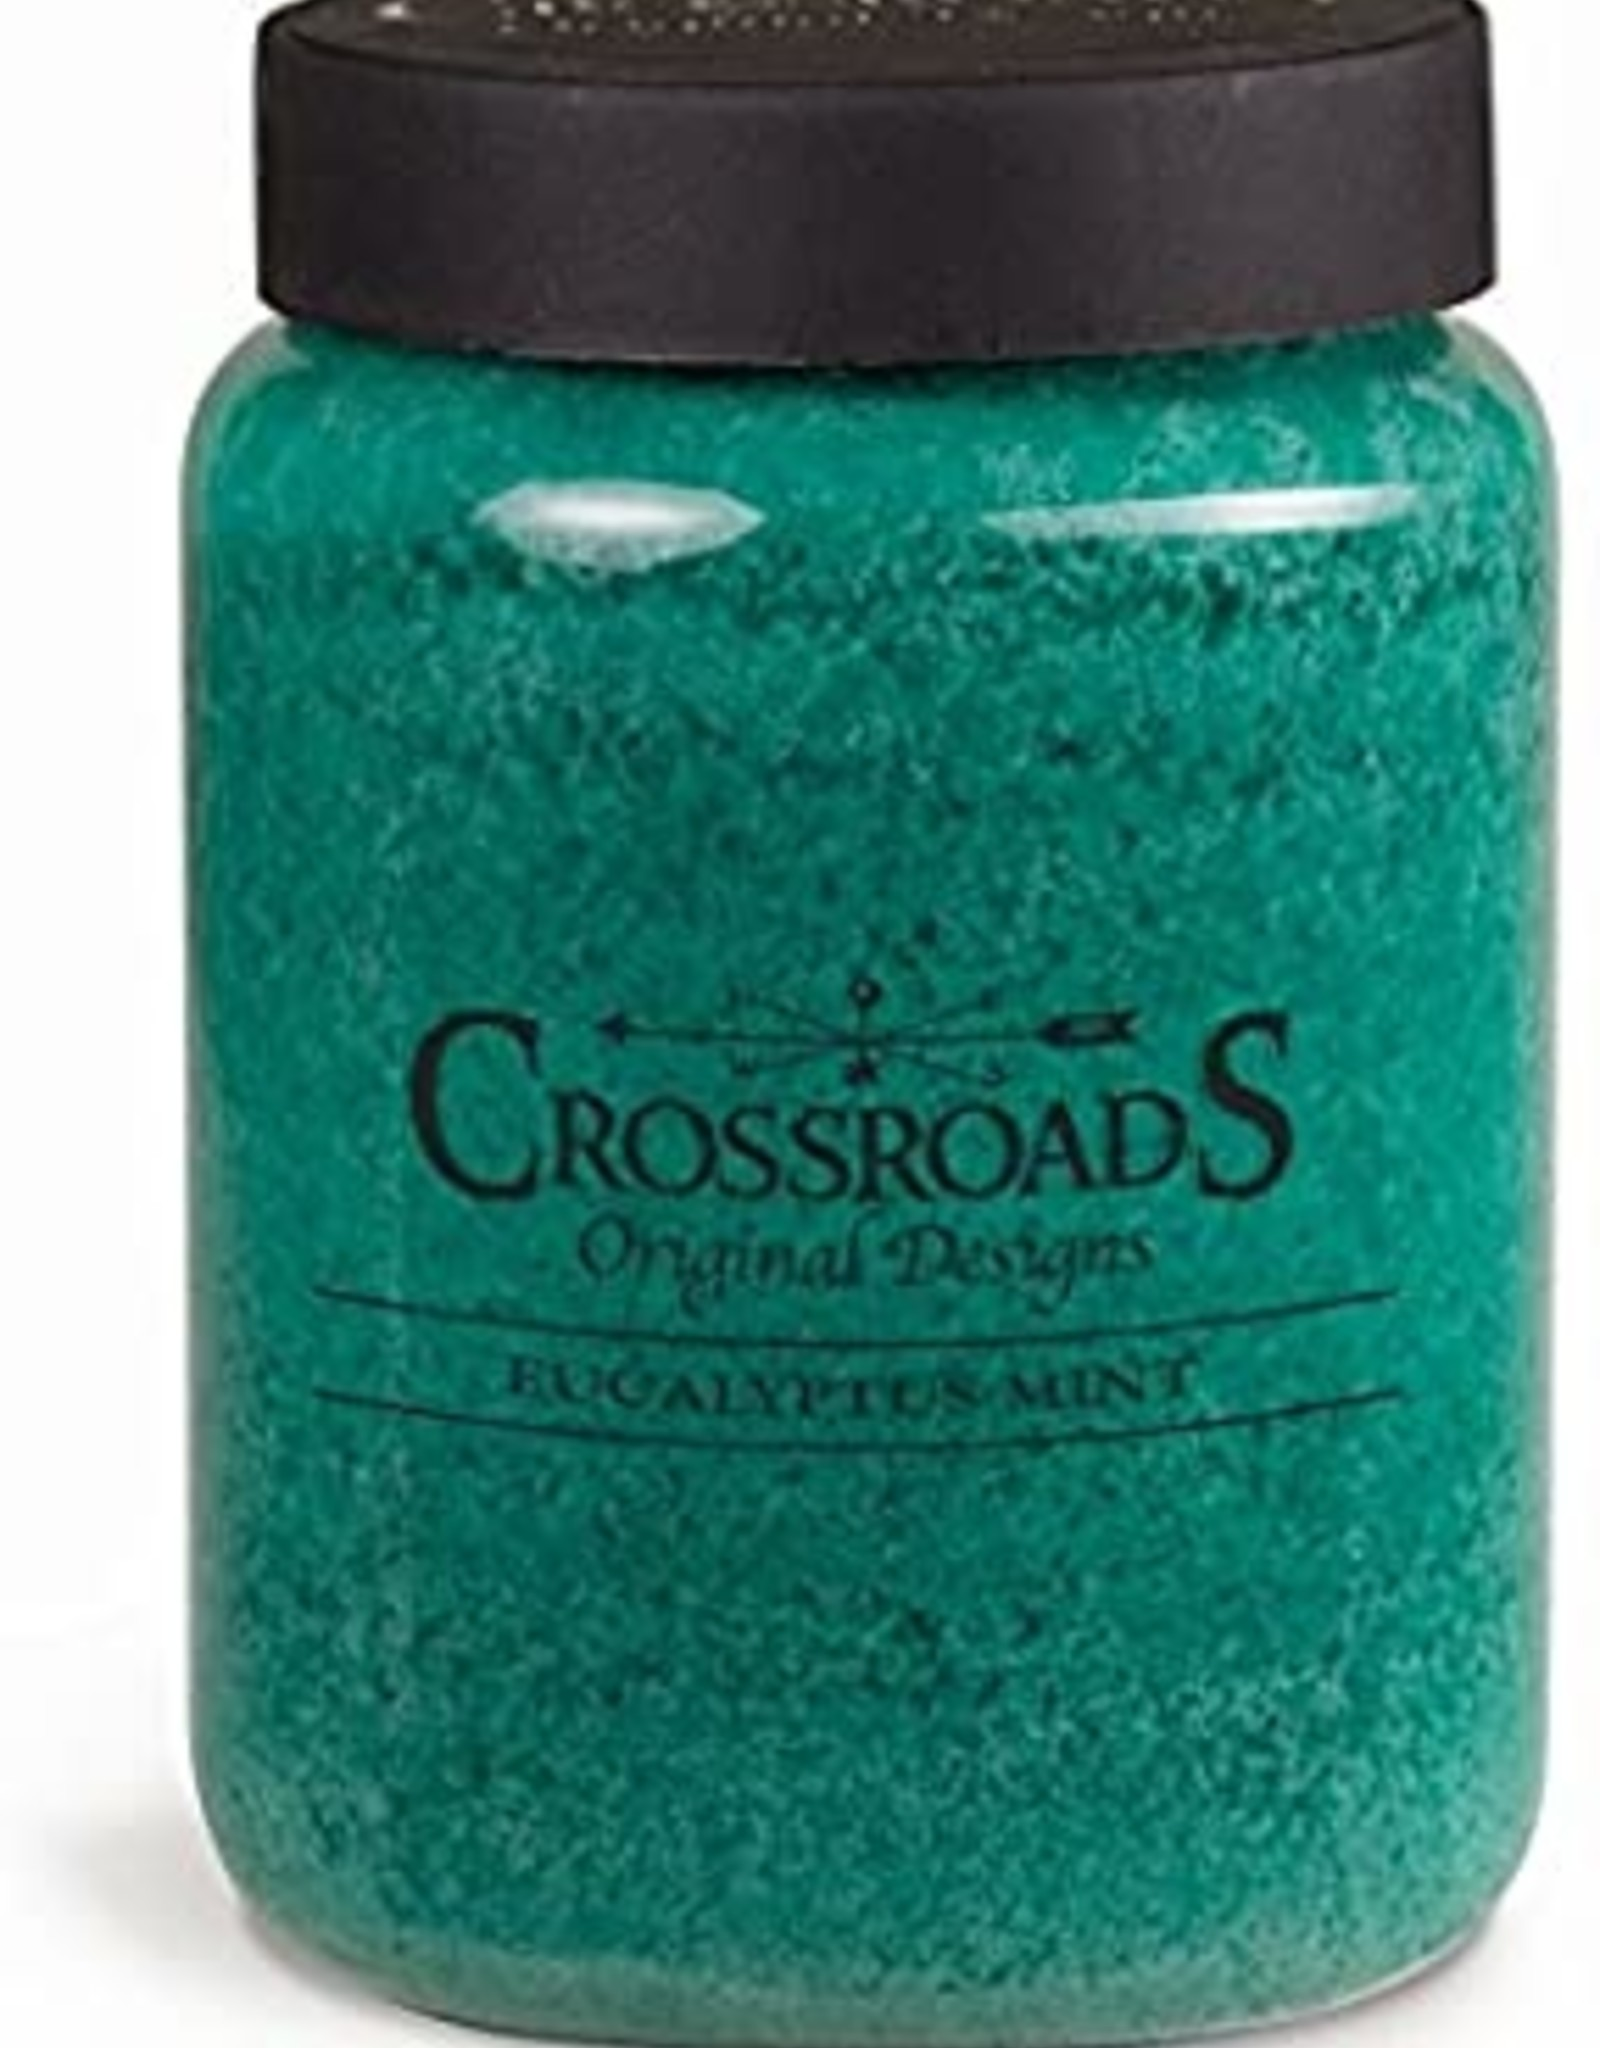 Crossroads Eucalyptus & Mint Candle